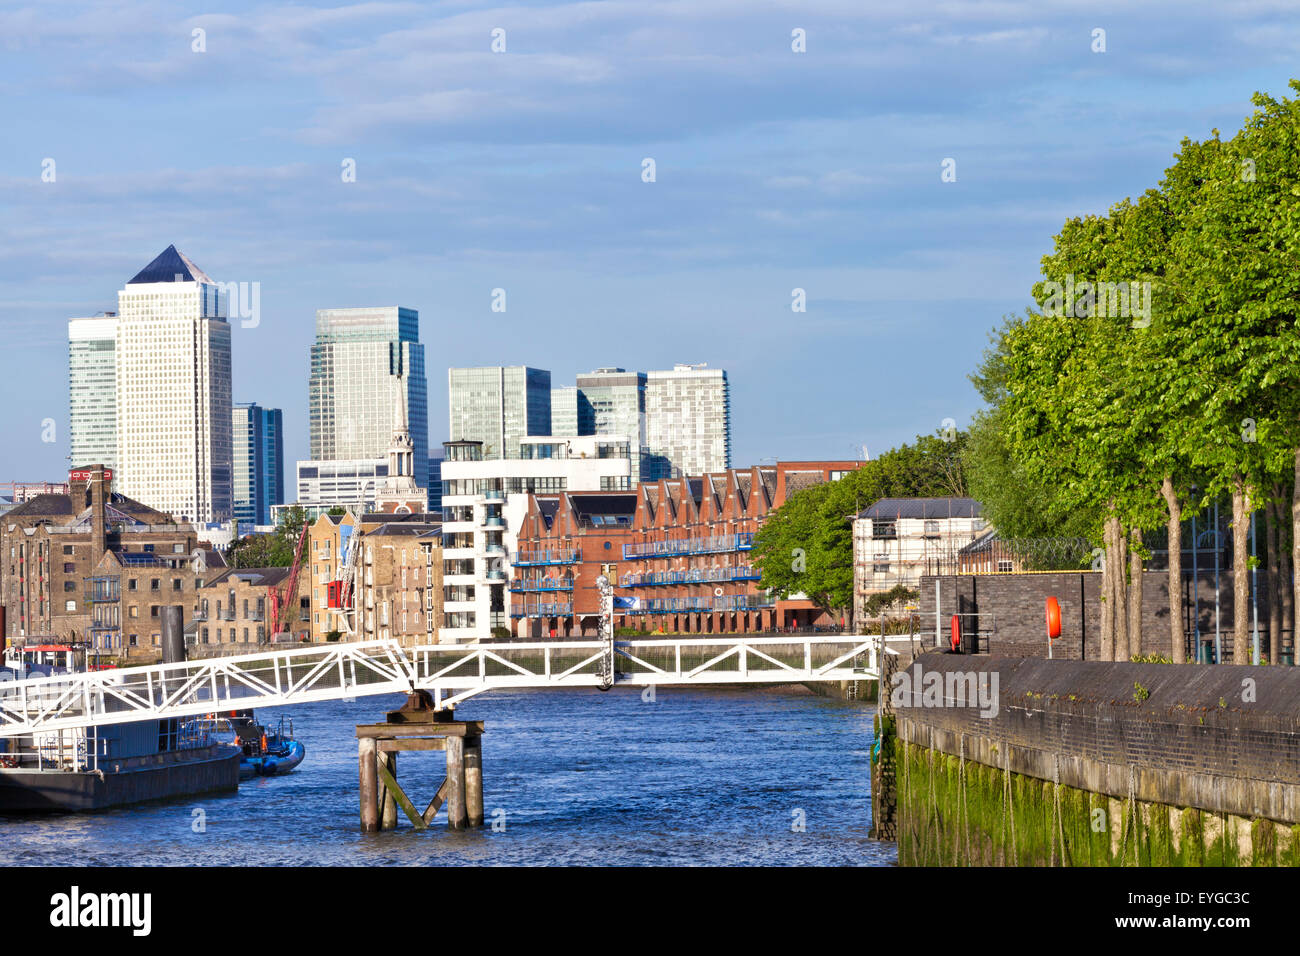 London Canary Wharf Docklands skyline view over Thames river along bankside with green trees, waterfront houses - Stock Image